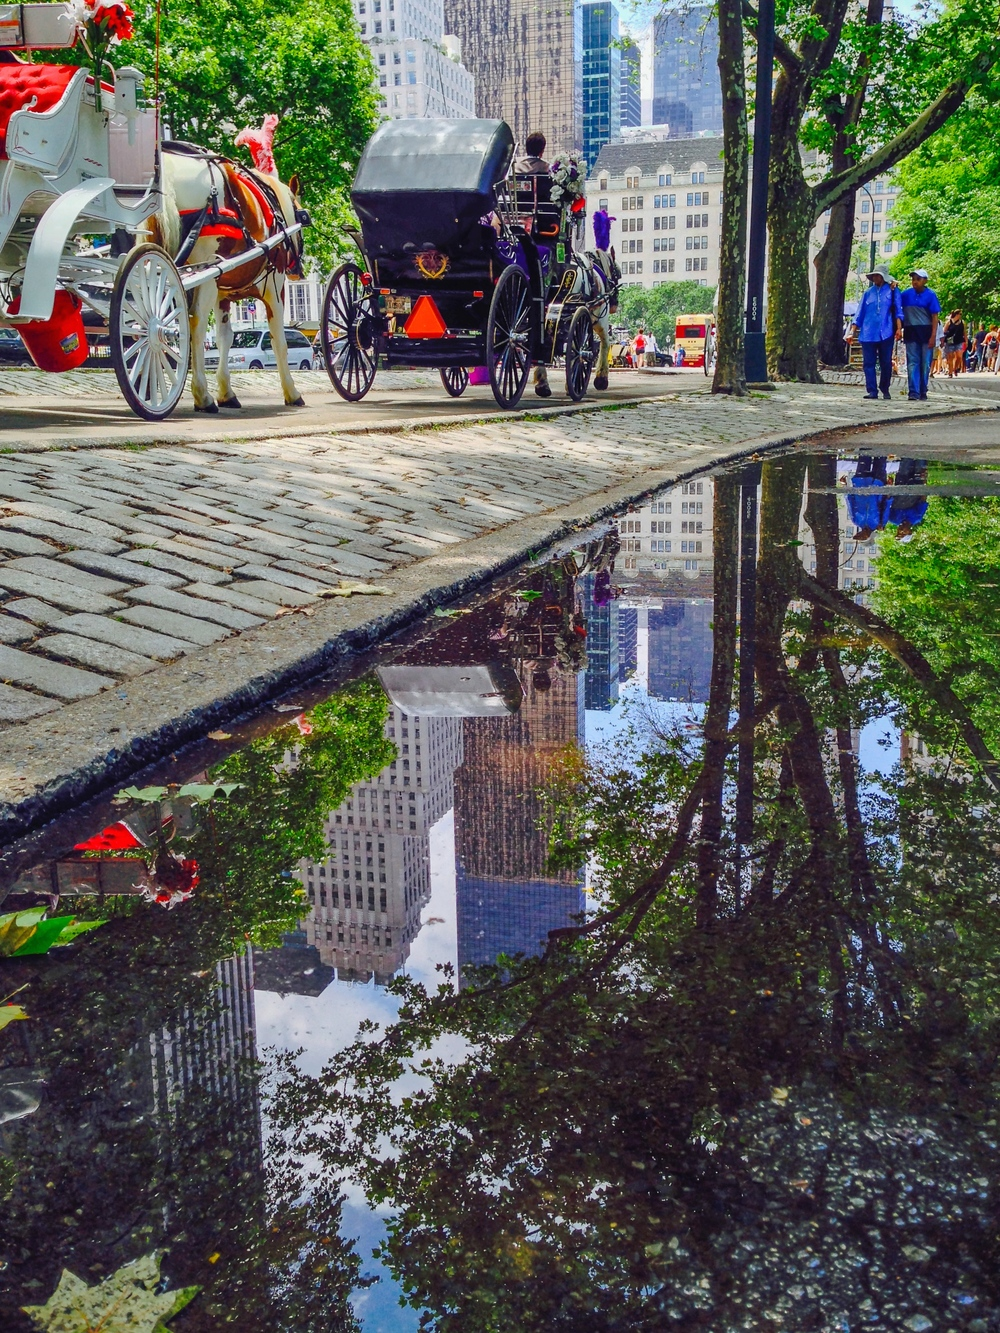 CENTRAL PARK REFLECTIONS : Here's another photo I snapped with my iPhone. What I like most about this shot, beside the boost in color I gave it, is that tops of the buildings are cut off but appear anyway in the puddle's reflection.